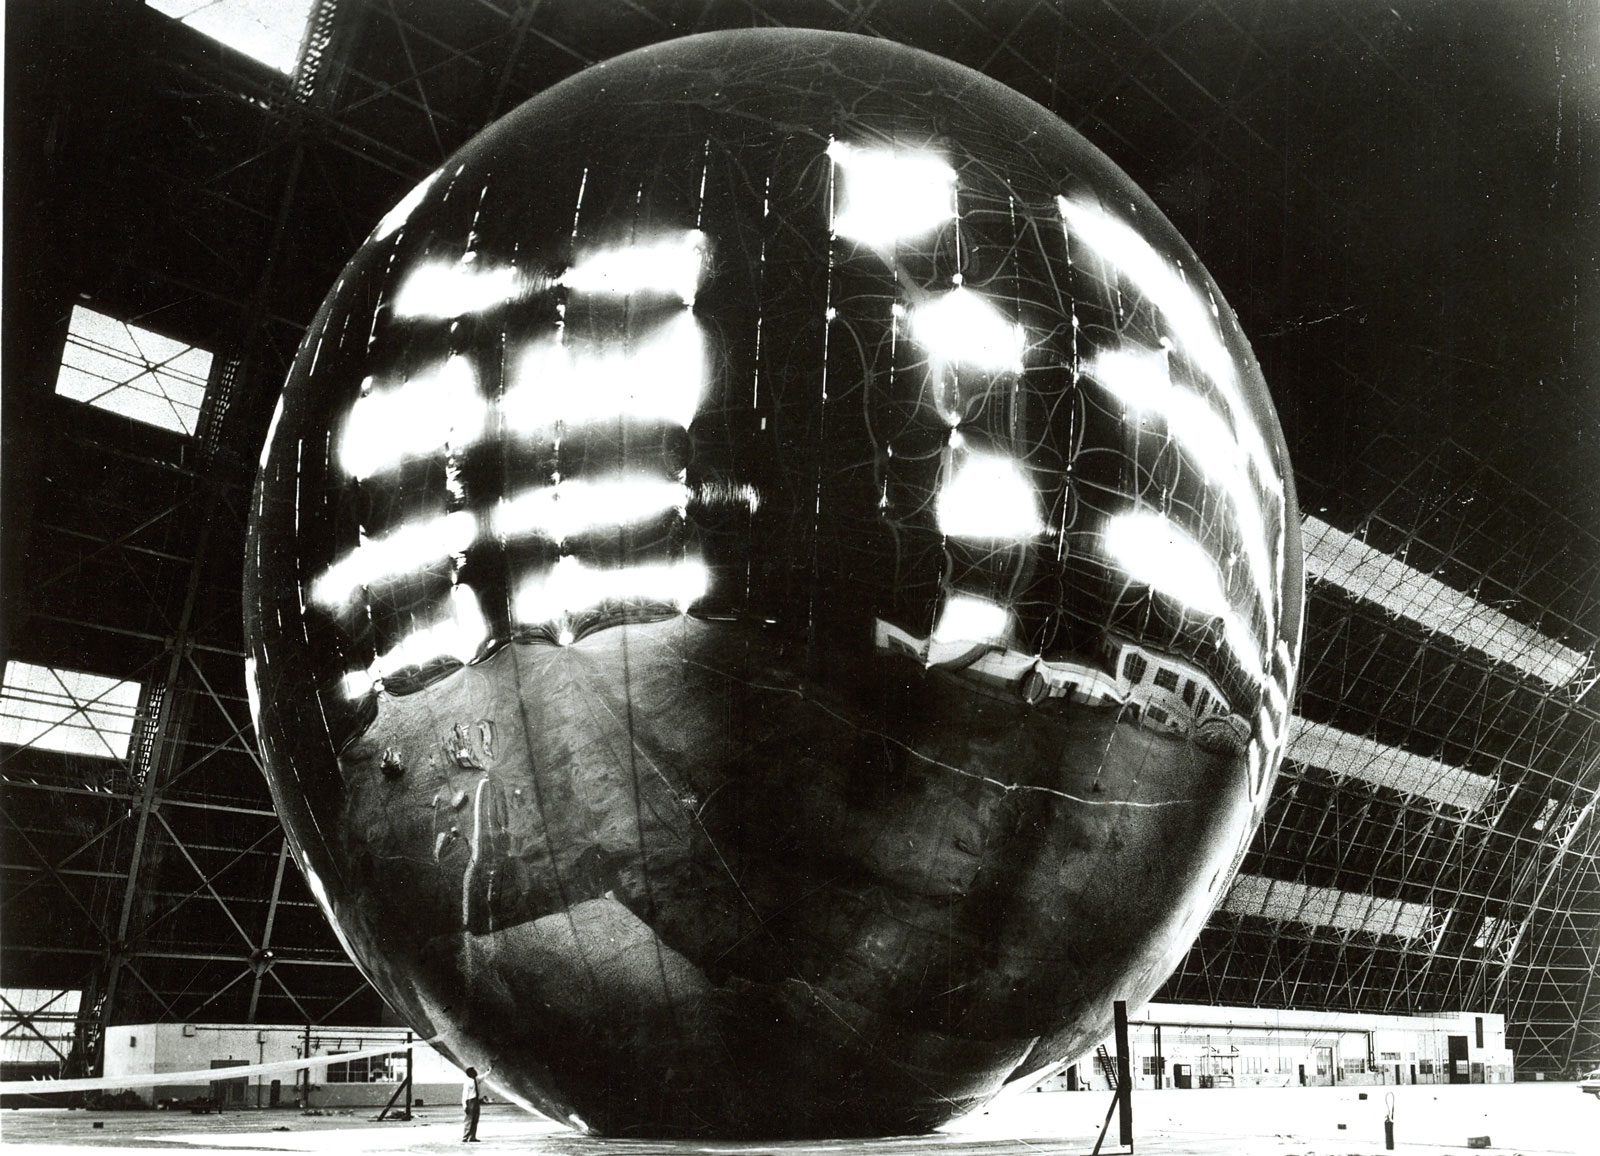 Project Echo  was the first passive communications satellite experiment. Two balloons were launched in 1960 and 1964 and floated into low Earth orbit. Communications signals, broadcast from Jet Propulsion Laboratory in Pasadena, bounced off Echo's reflective metallic surface and were then received at Bell Labs in New Jersey.